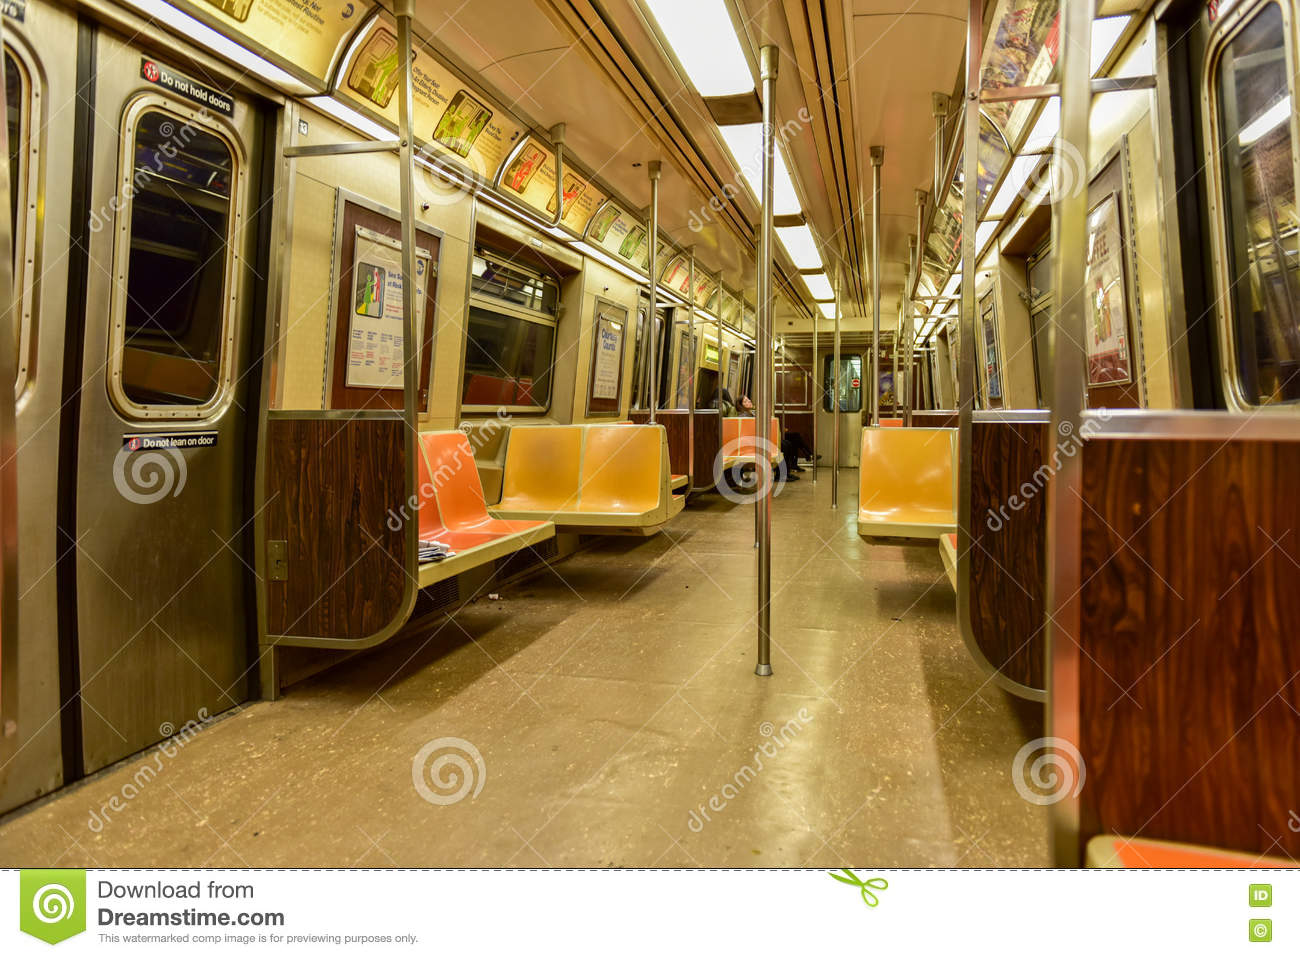 nyc mta subway car interior editorial photo 14995083. Black Bedroom Furniture Sets. Home Design Ideas